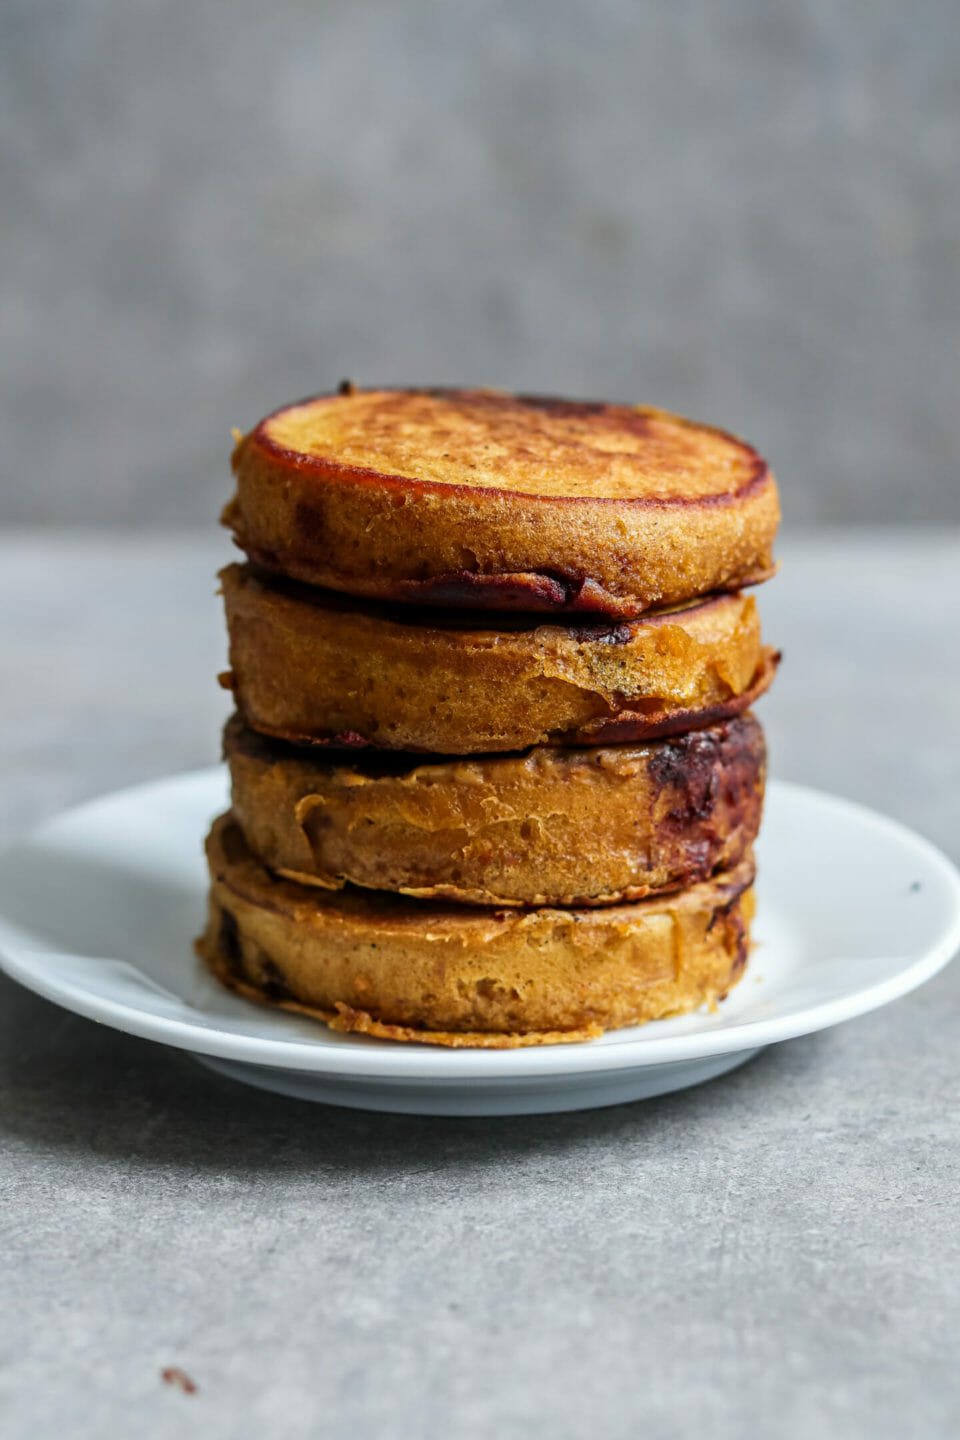 Vegan pancakes with pumpkin and chocolate drops. Served with caramelized brazil nuts and maple syrup.